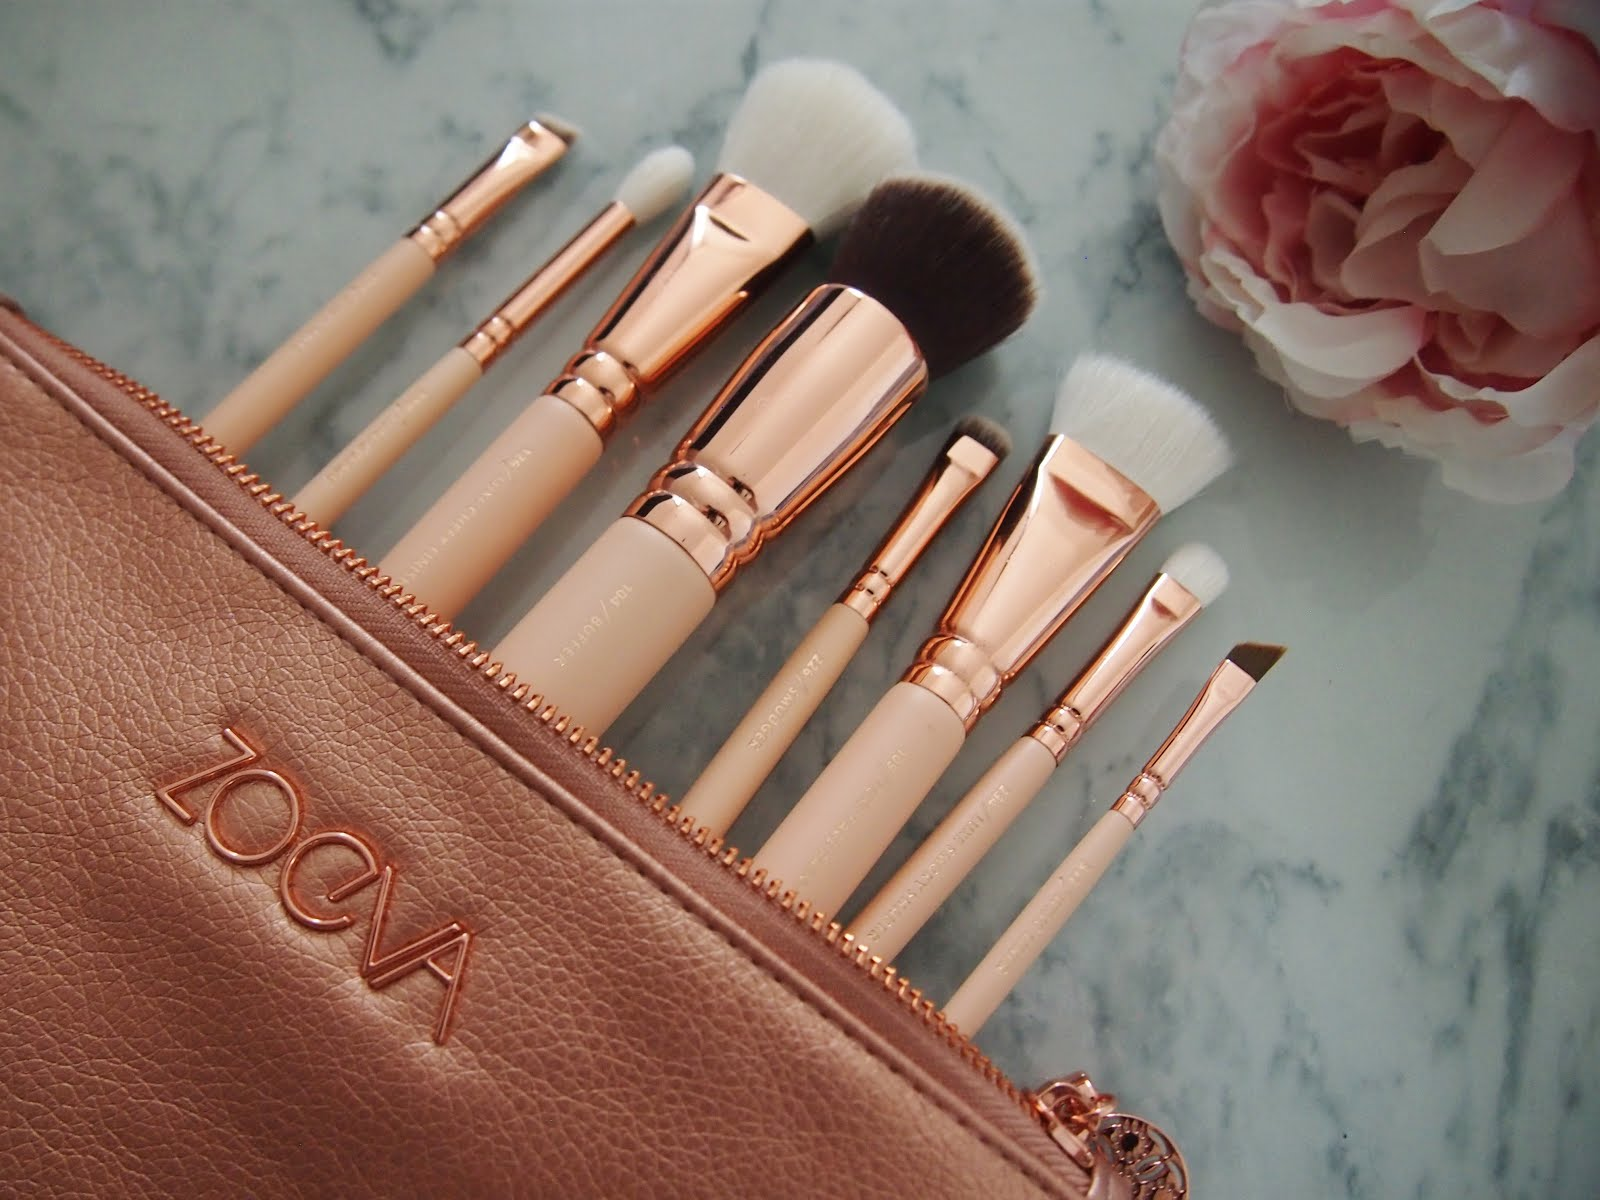 zoeva rose golden luxury set volume 2